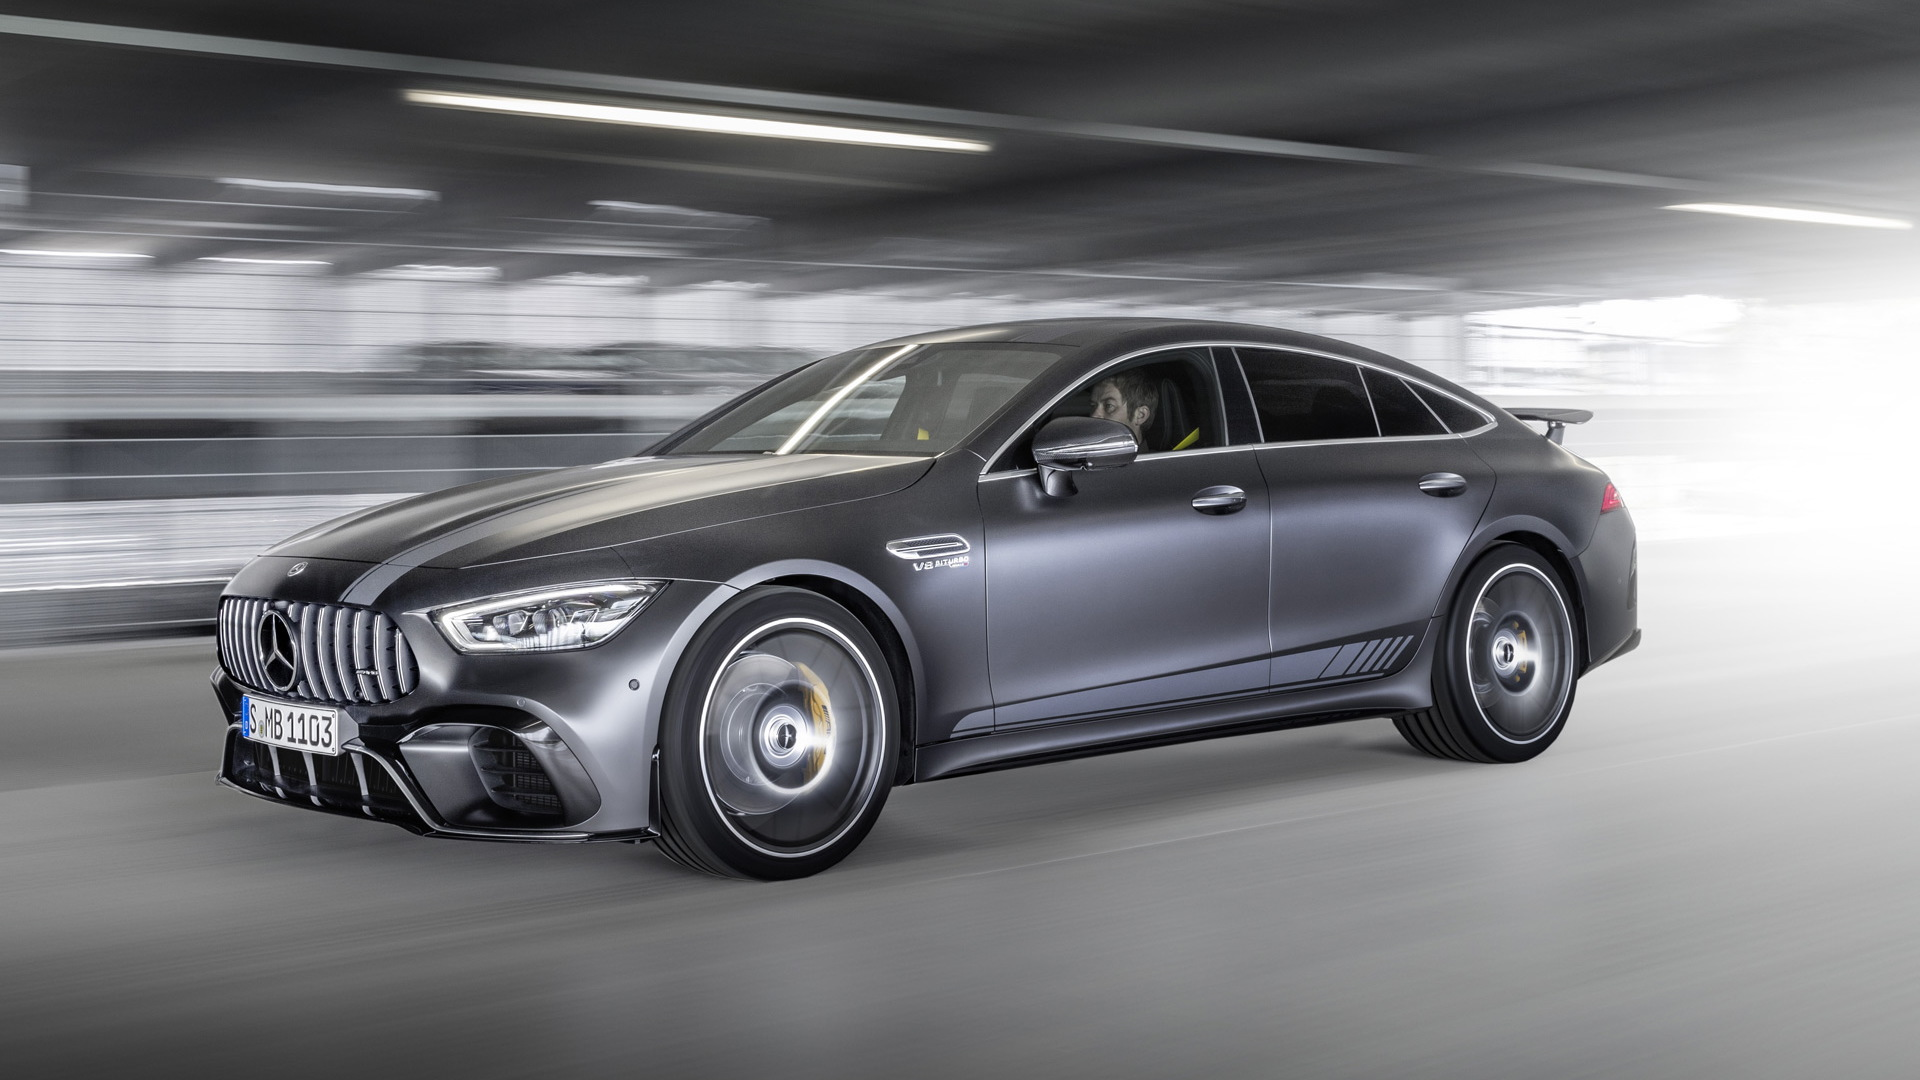 2019 Mercedes-AMG GT 4-Door Coupe 63 S Edition 1